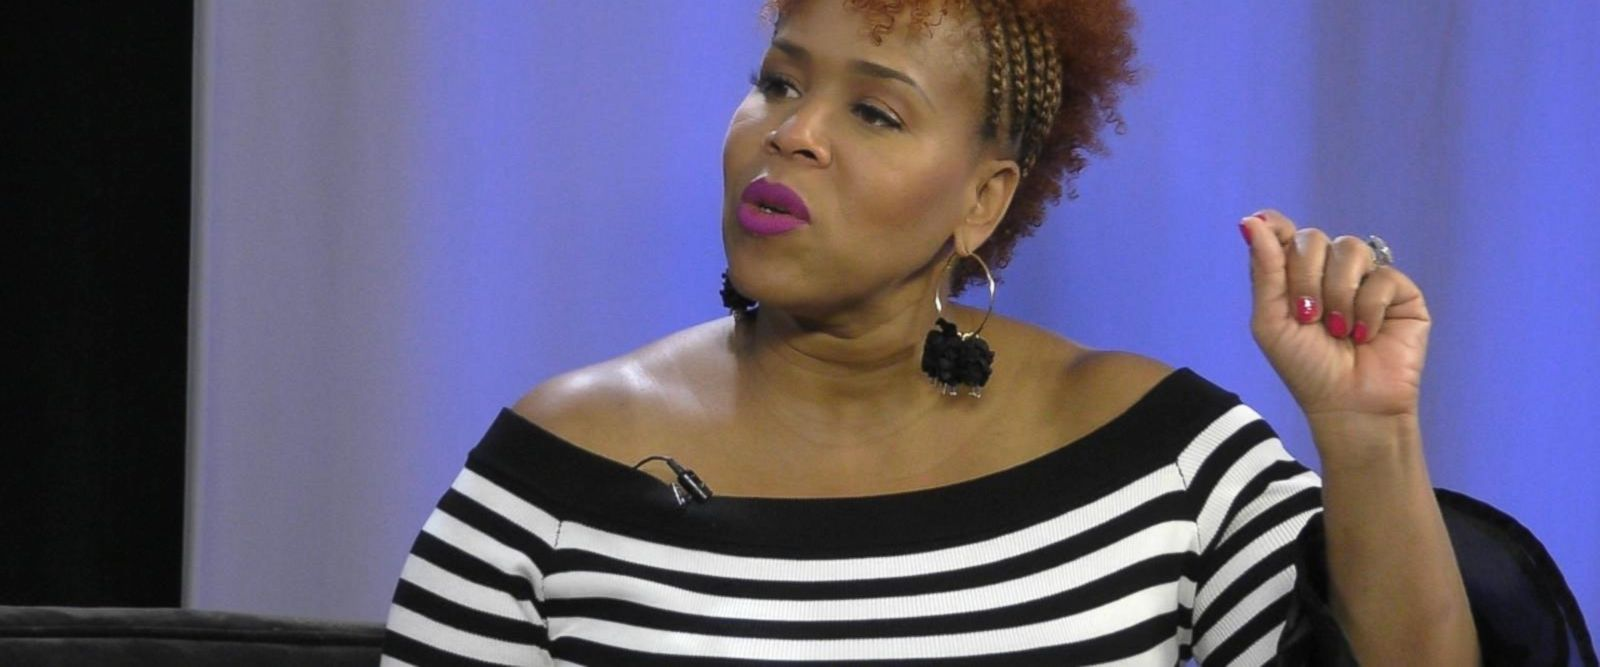 VIDEO: Gospel singer Tina Campbell on supporting Trump